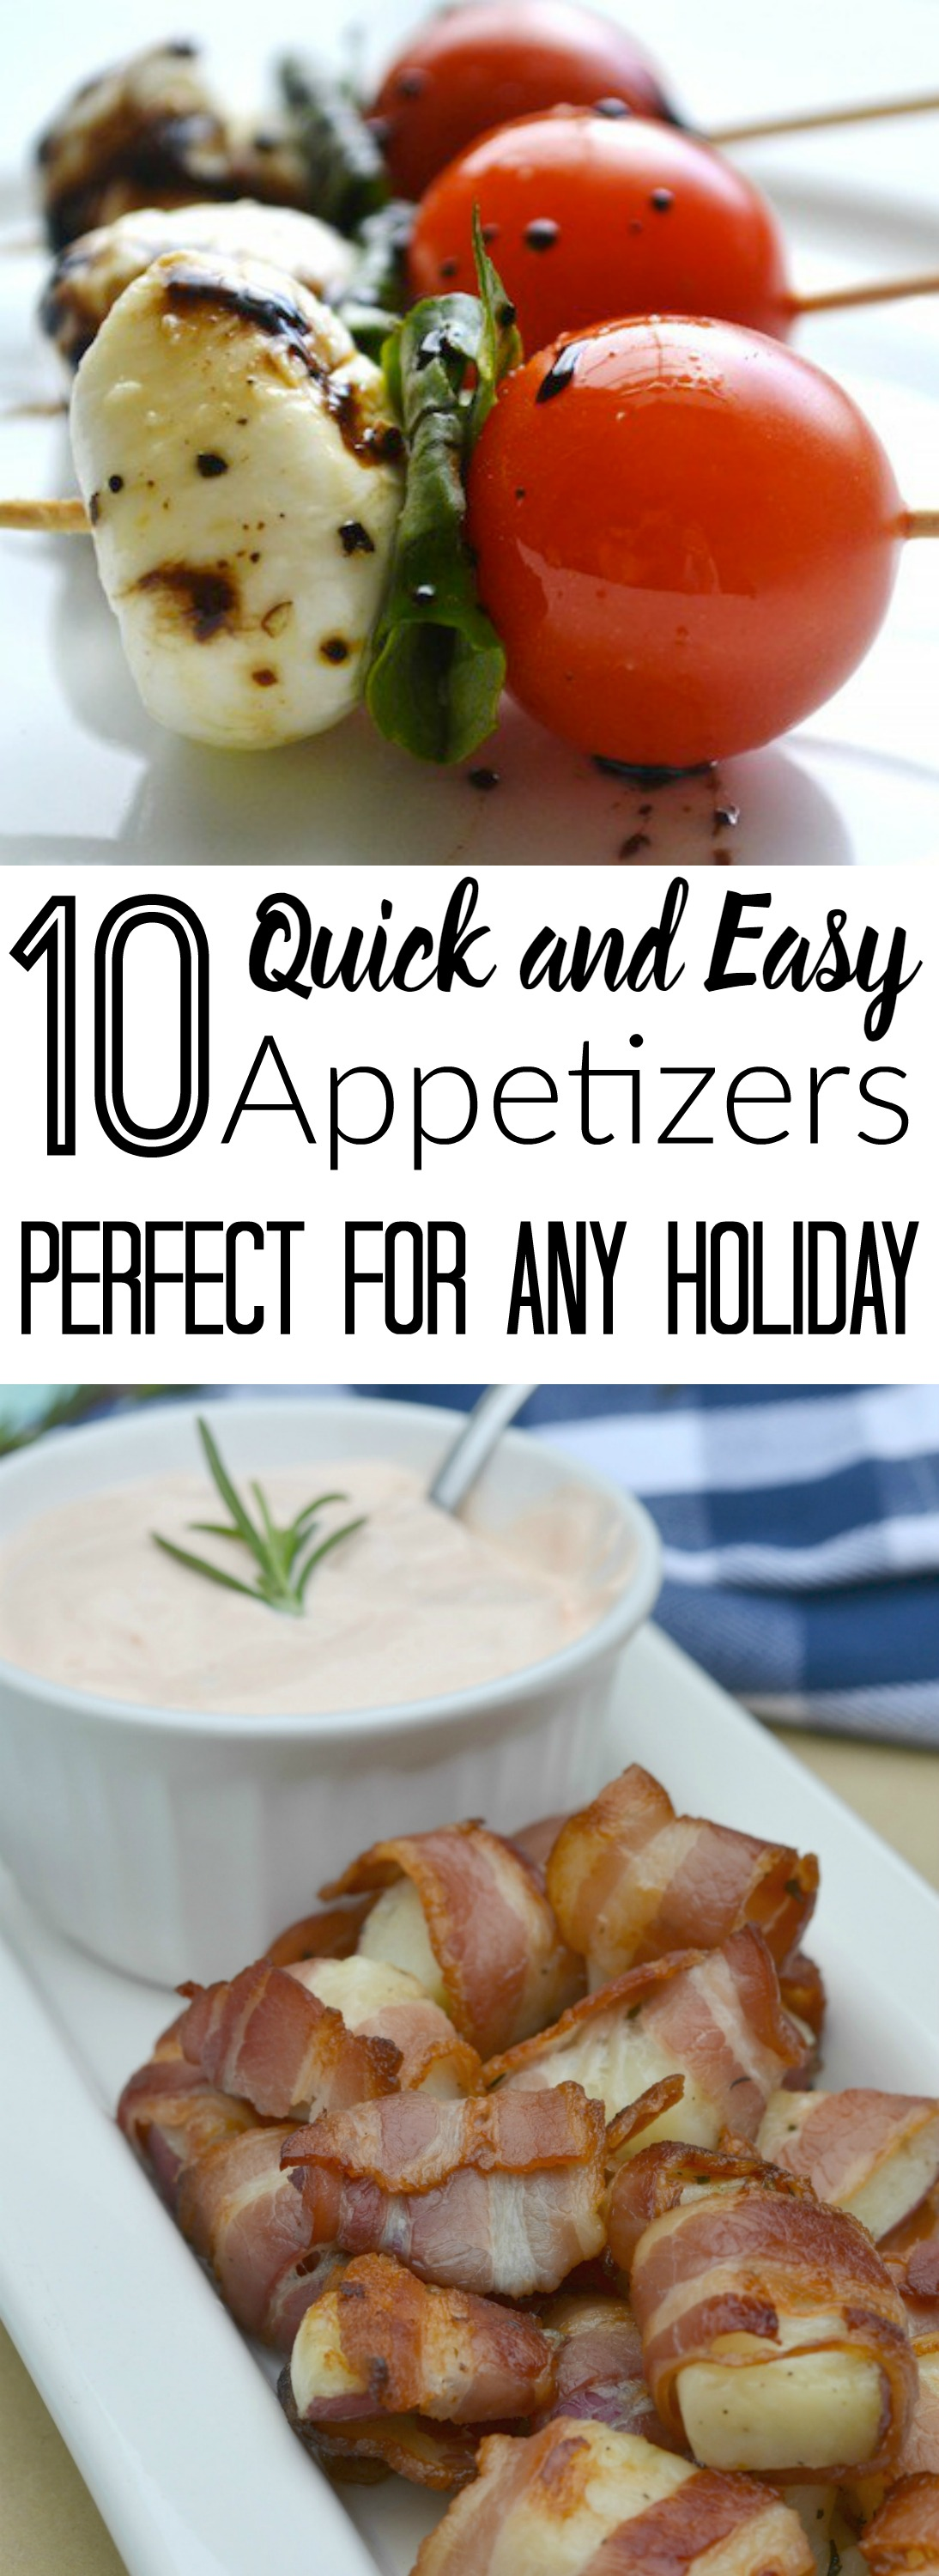 10 Quick and Easy Holiday Appetizers